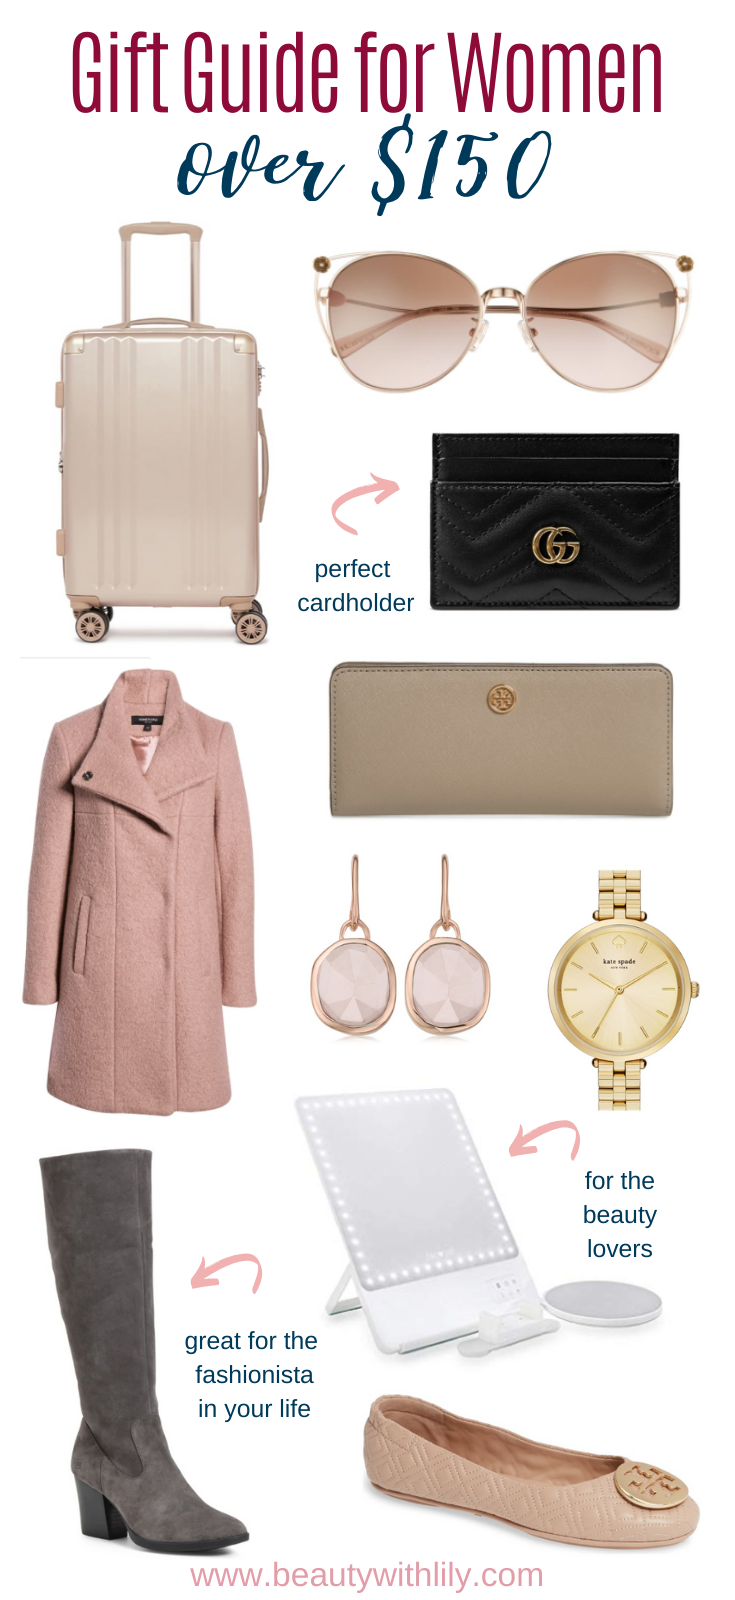 Gift Guide for Women // Gift Ideas for Her // Affordable Gifts for Women // Stocking Stuffers for Women // Christmas Gift Ideas // Gifts Under $100 // Gifts Under $50 // Gifts for All Budgets | Beauty With Lily